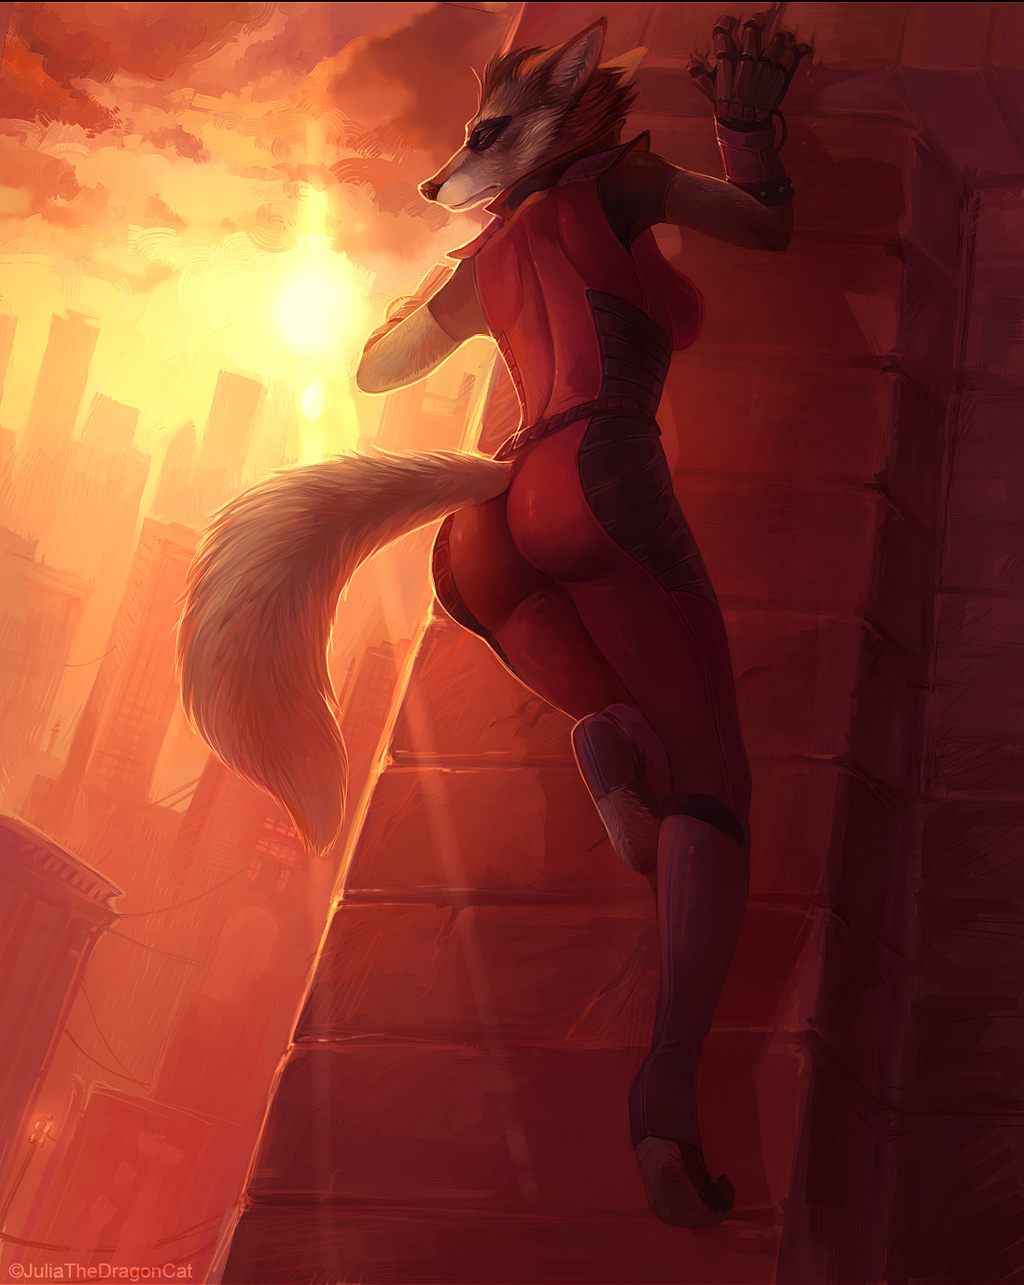 Above the Big City - By Julia the Dragon Cat